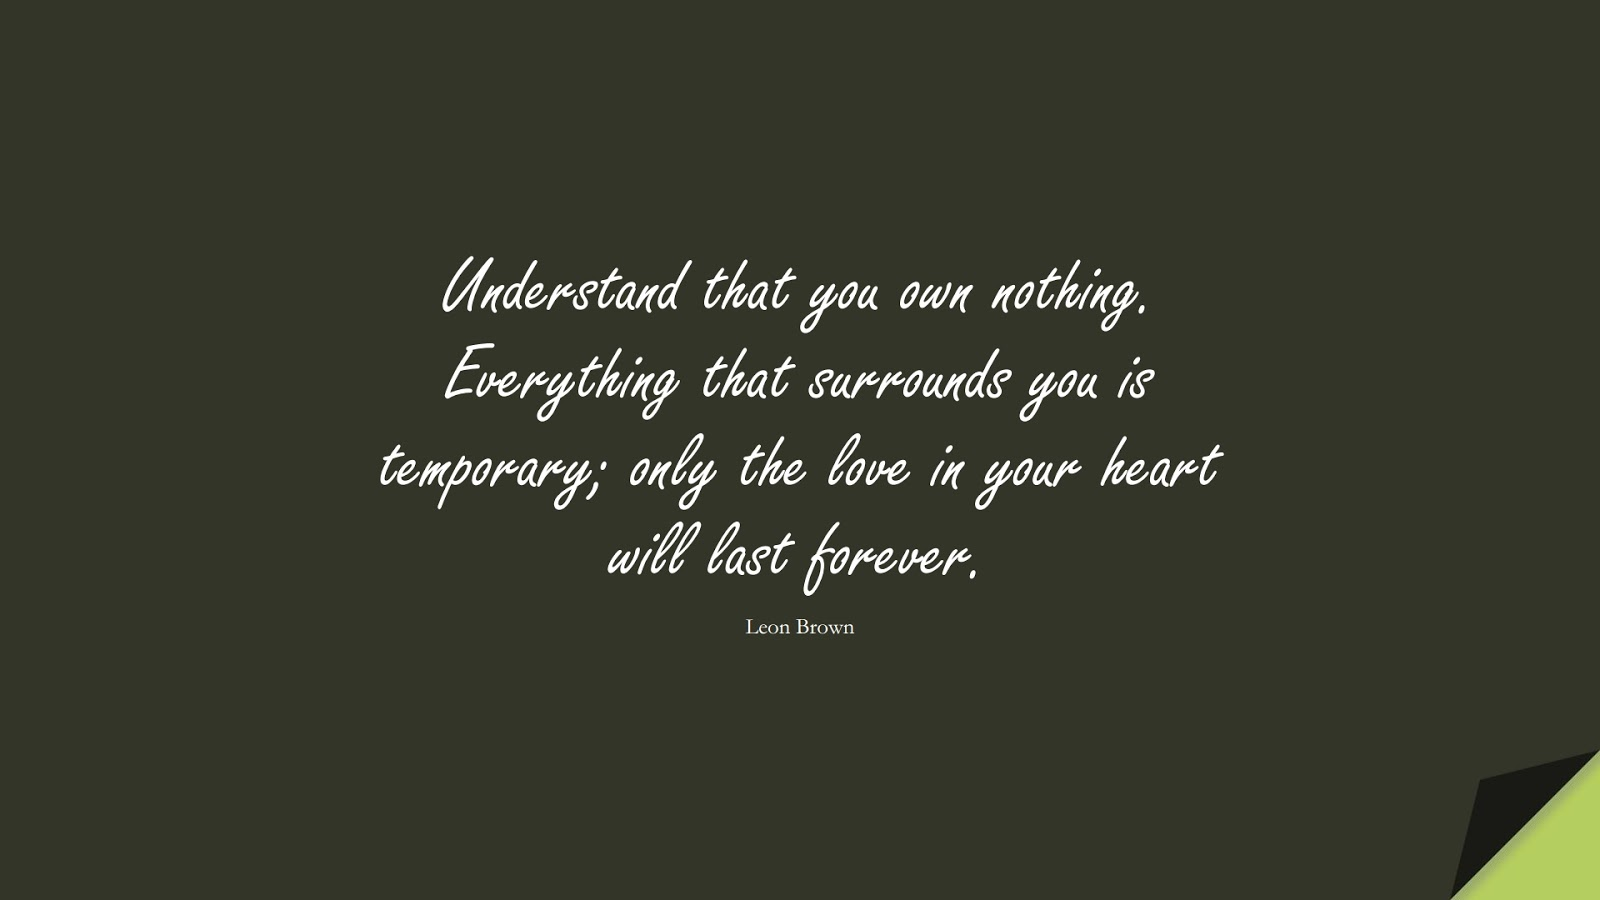 Understand that you own nothing. Everything that surrounds you is temporary; only the love in your heart will last forever. (Leon Brown);  #LoveQuotes